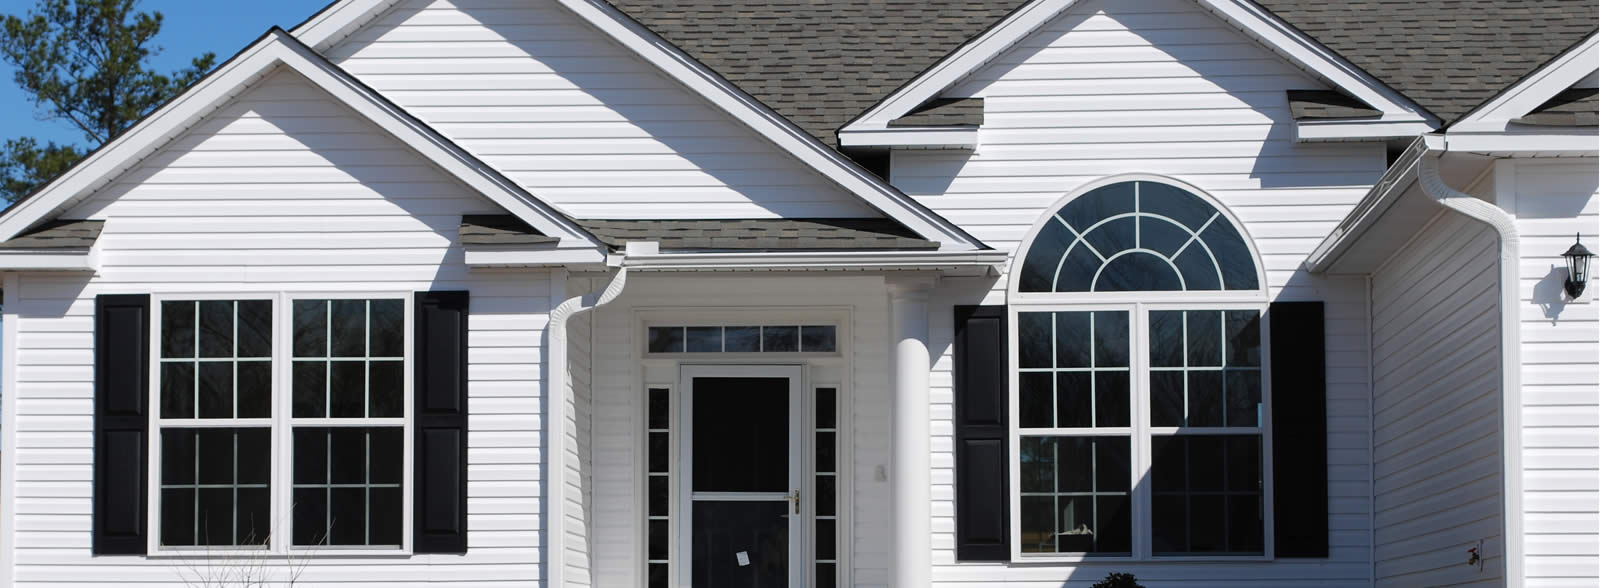 Superior Exterior Home Improvement Services